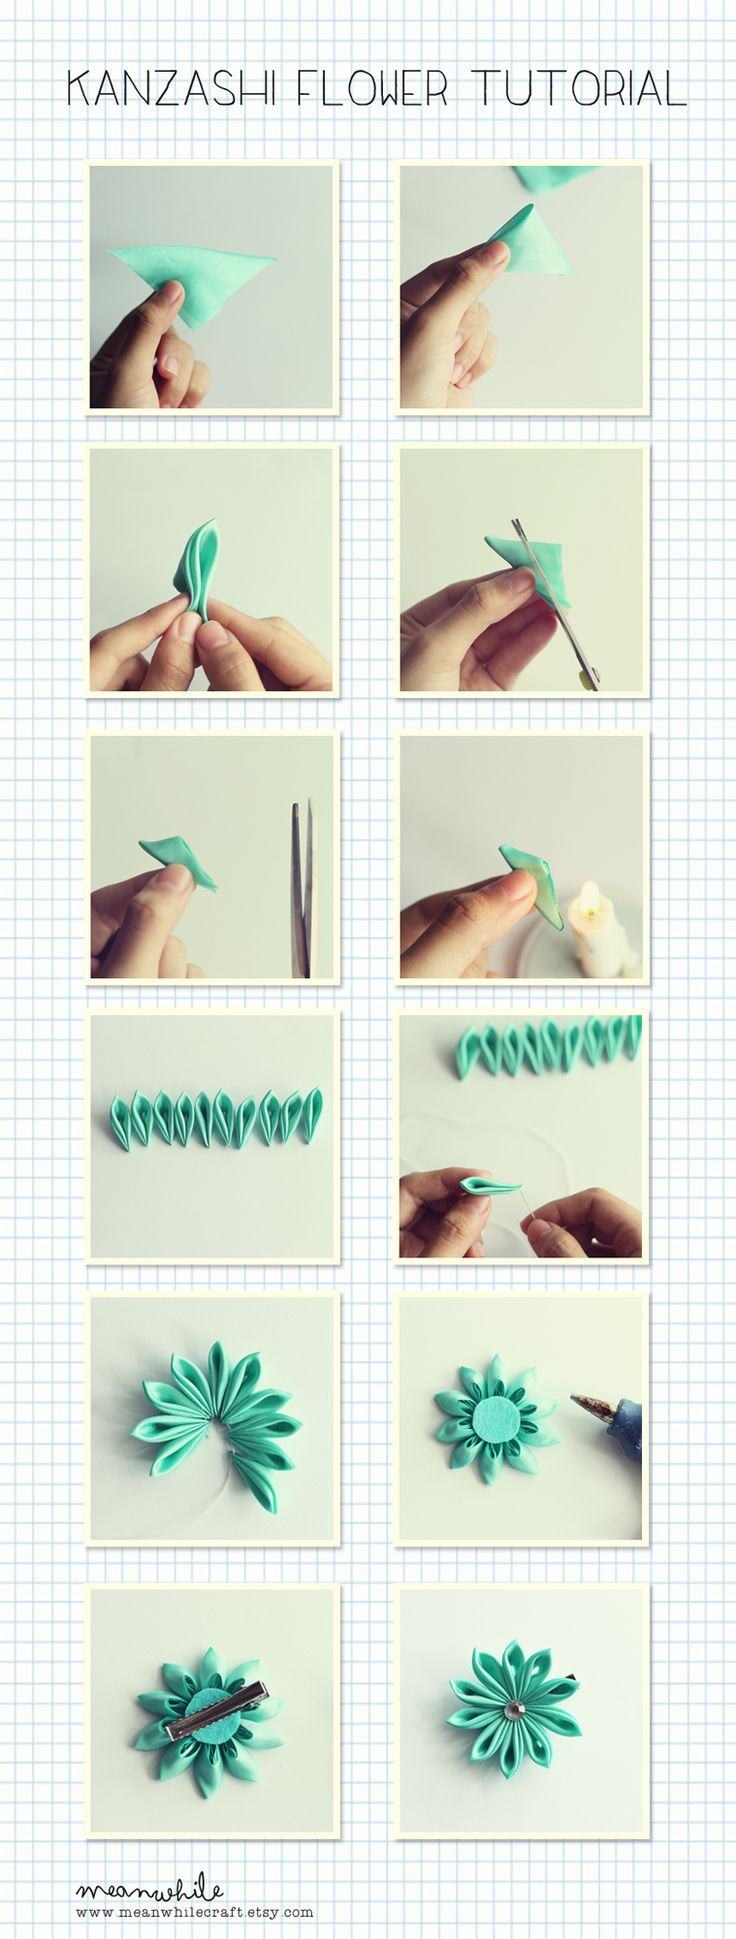 Kanzashi flower tutorial by MeanwhileCraft